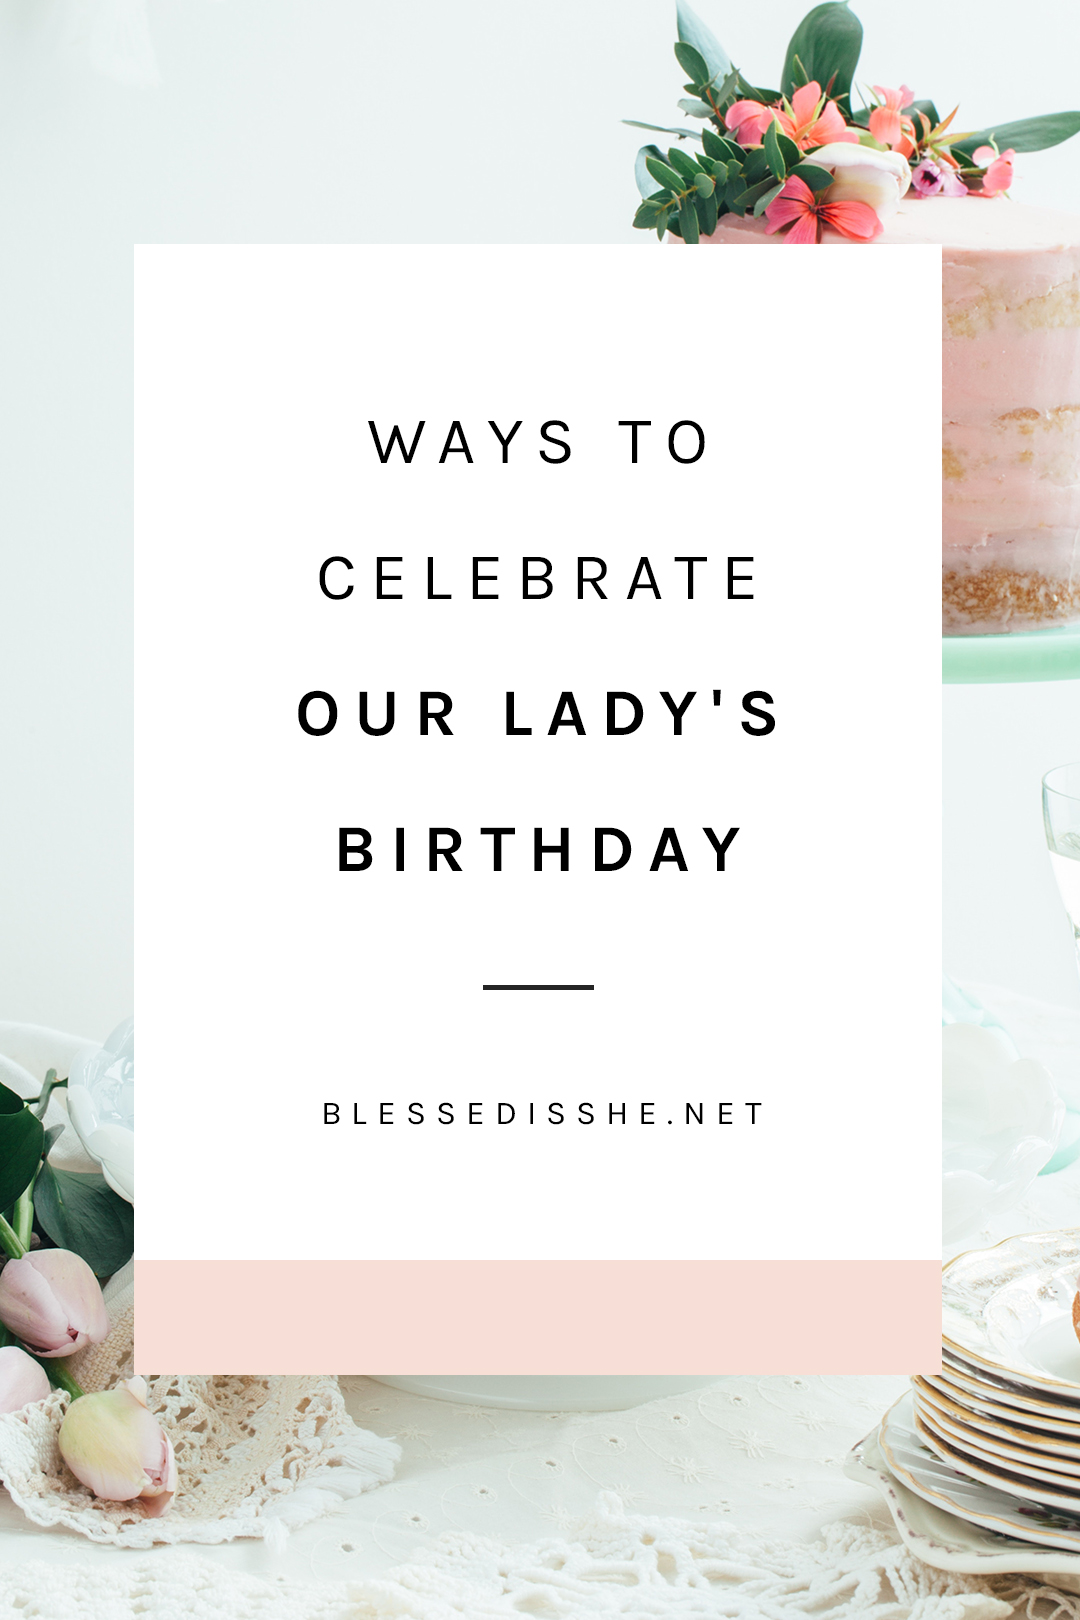 how to celebrate the blessed mother's birthday